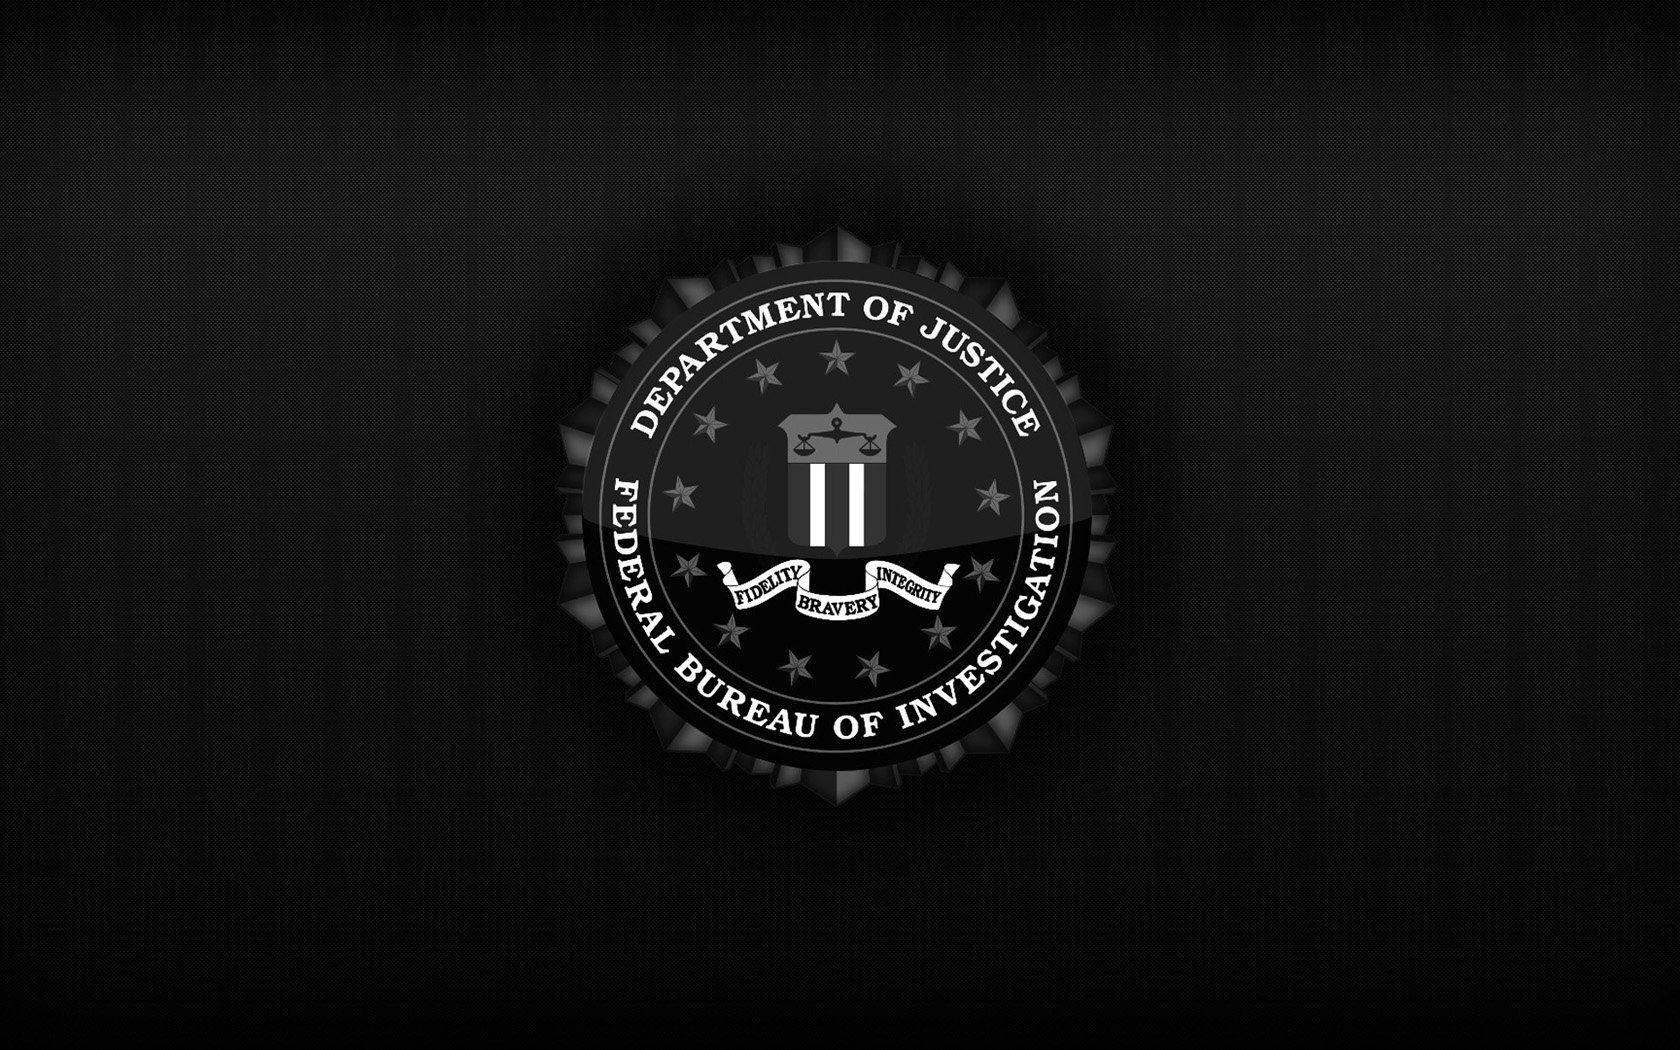 Hd Background Wallpaper 800x600: CIA Seal Wallpaper